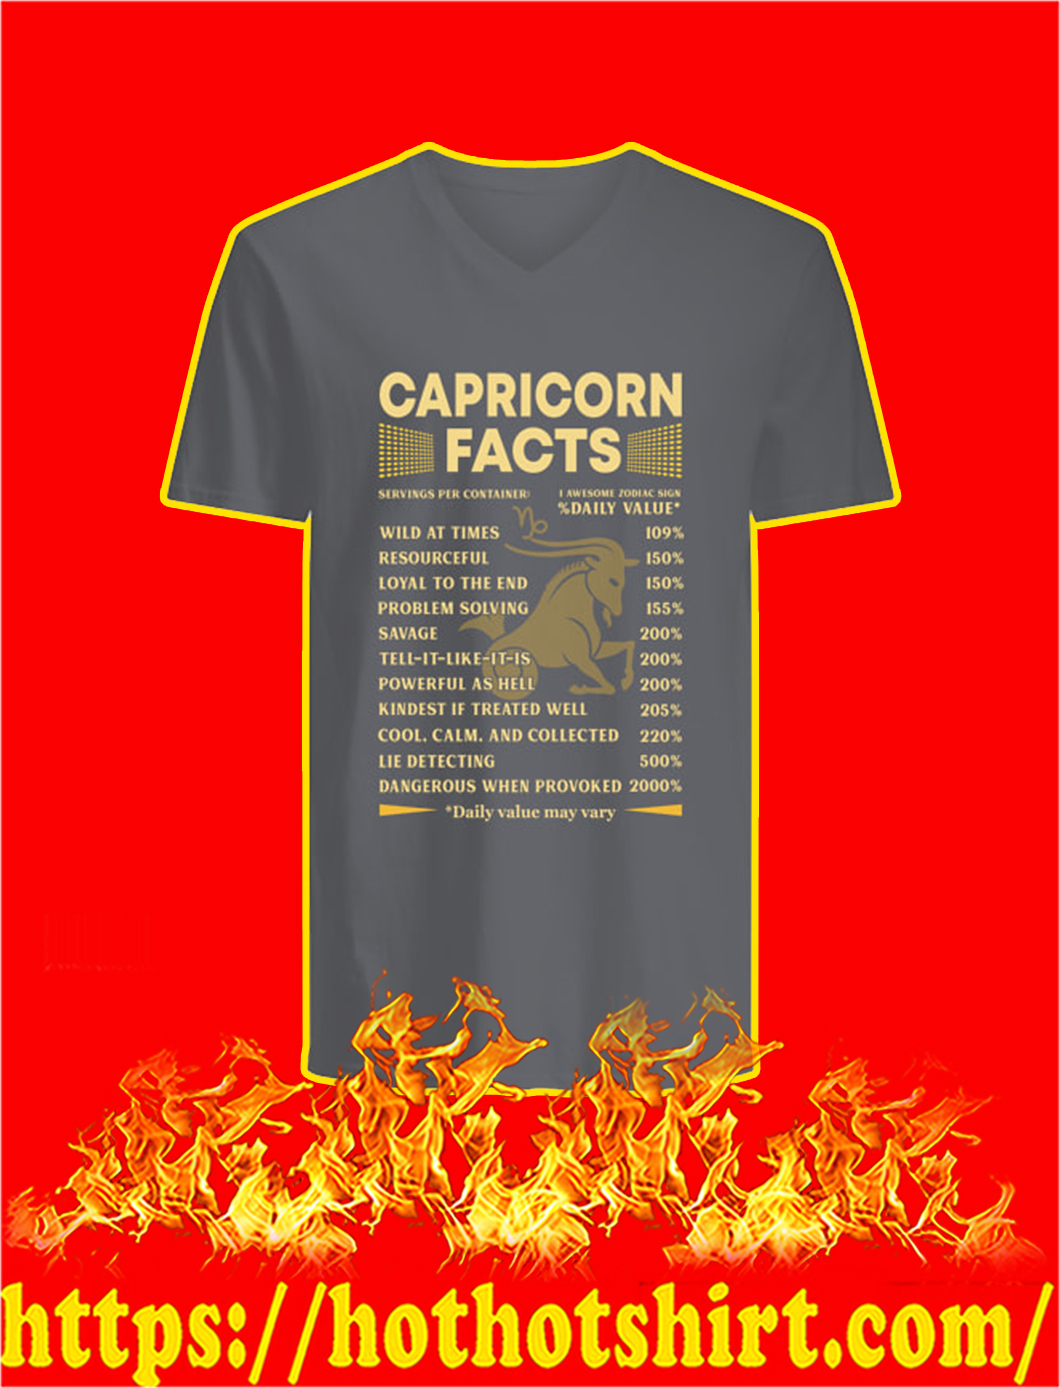 Capricorn Facts Servings Per Container v-neck